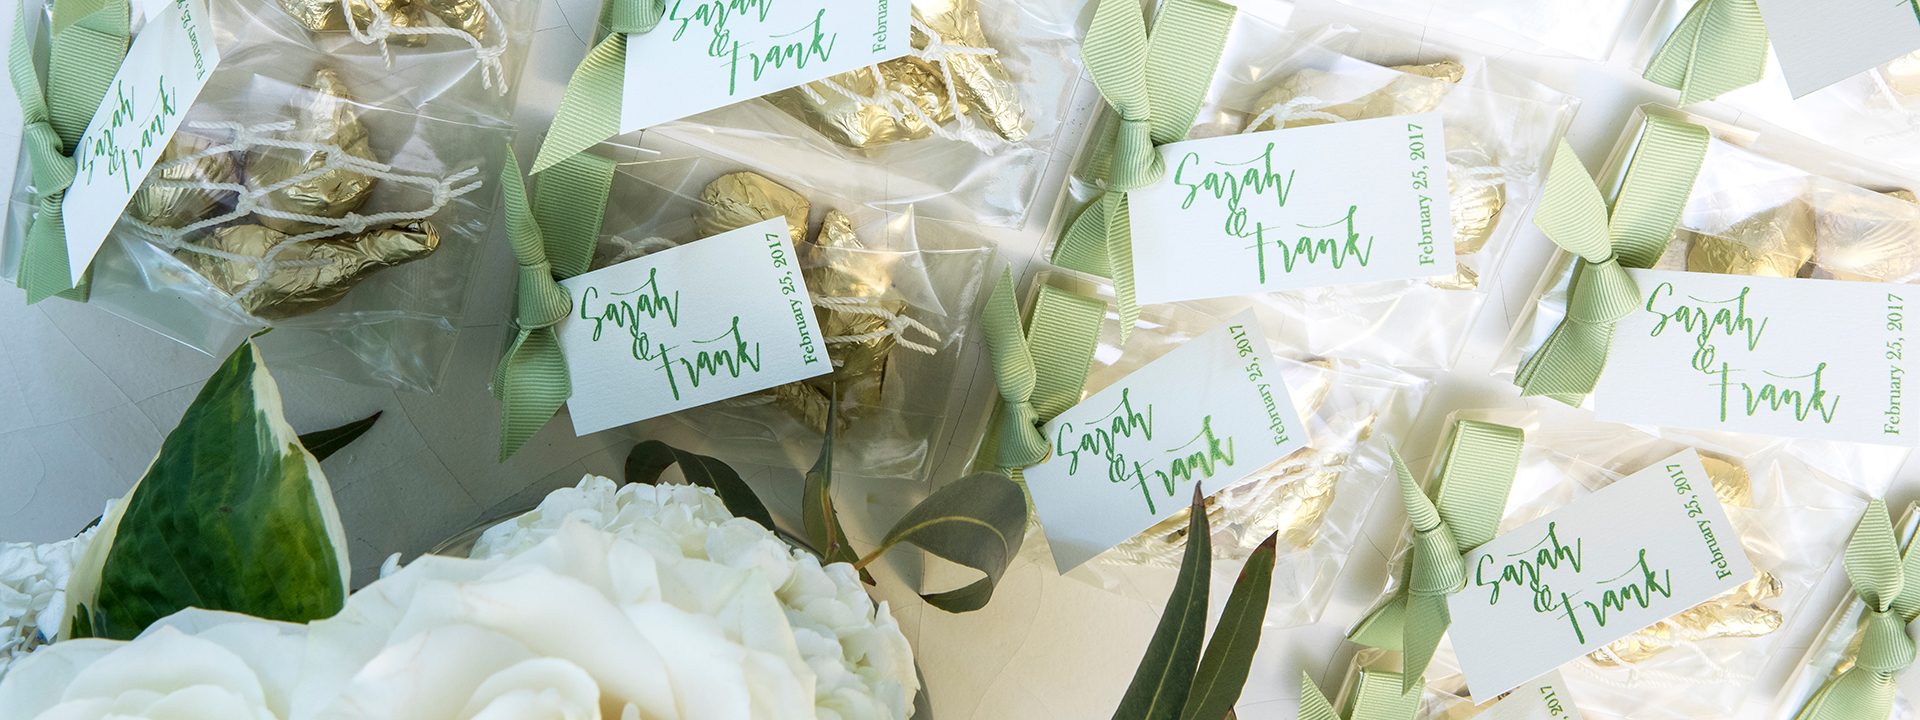 Wedding Favors Header Flipped